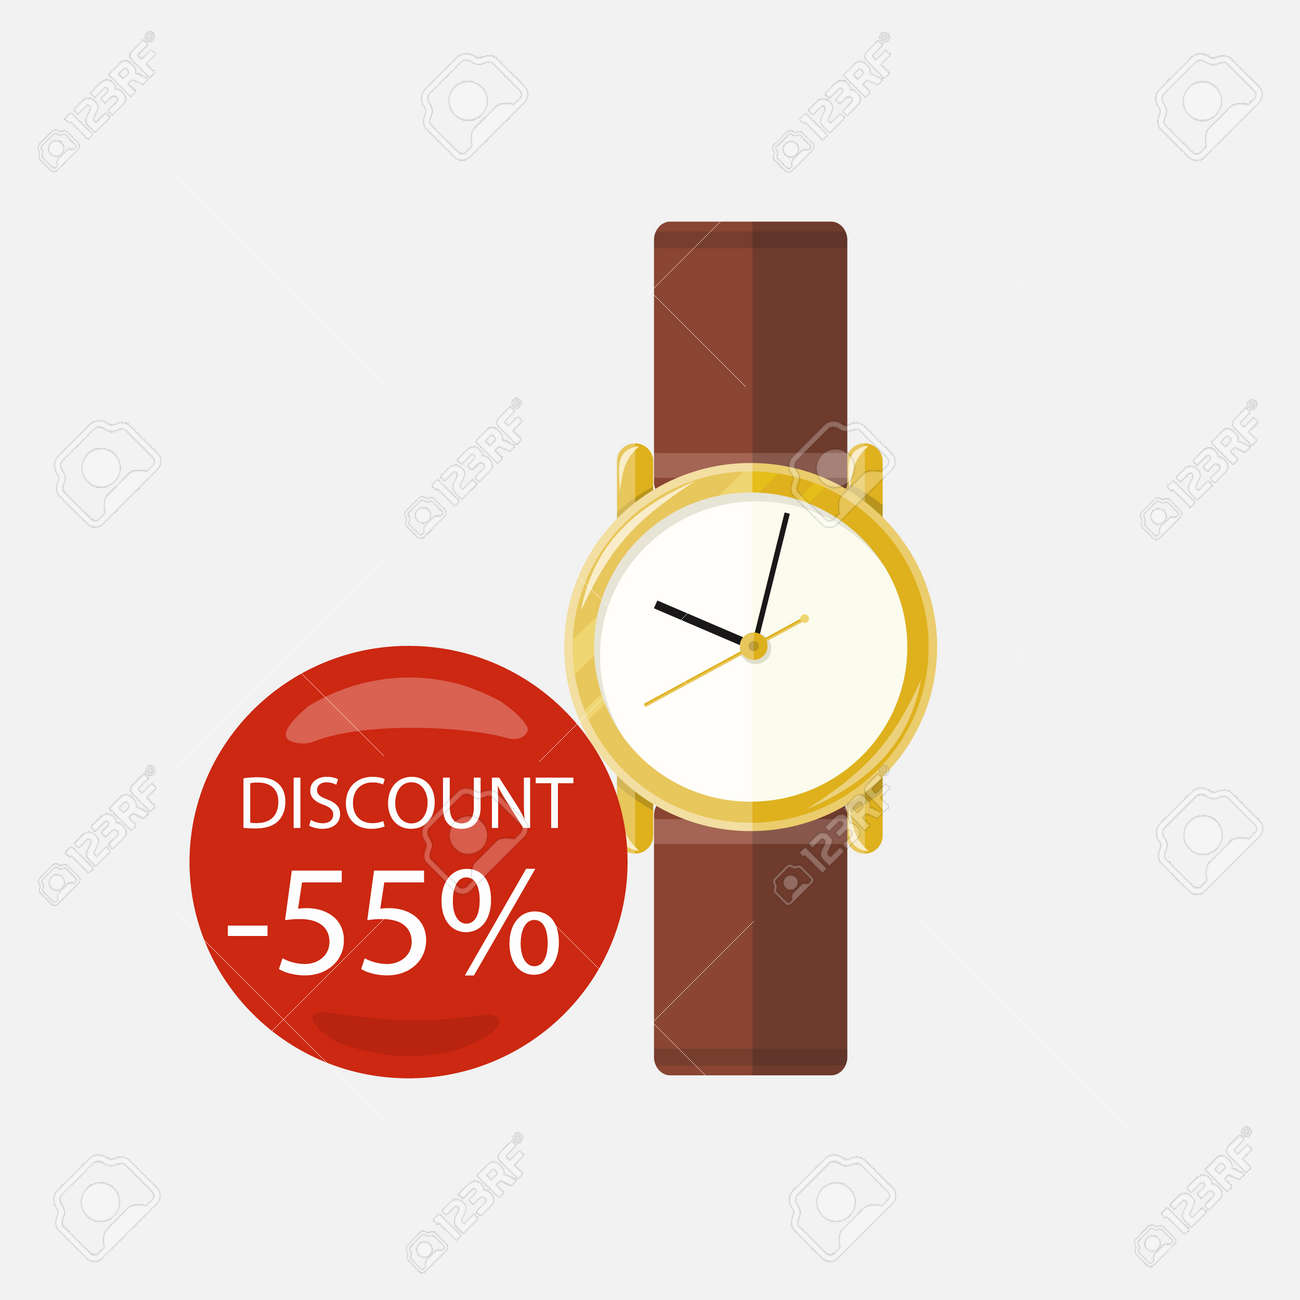 Appliances Discount Sale Of Household Appliances Electronic Device Red Bubble